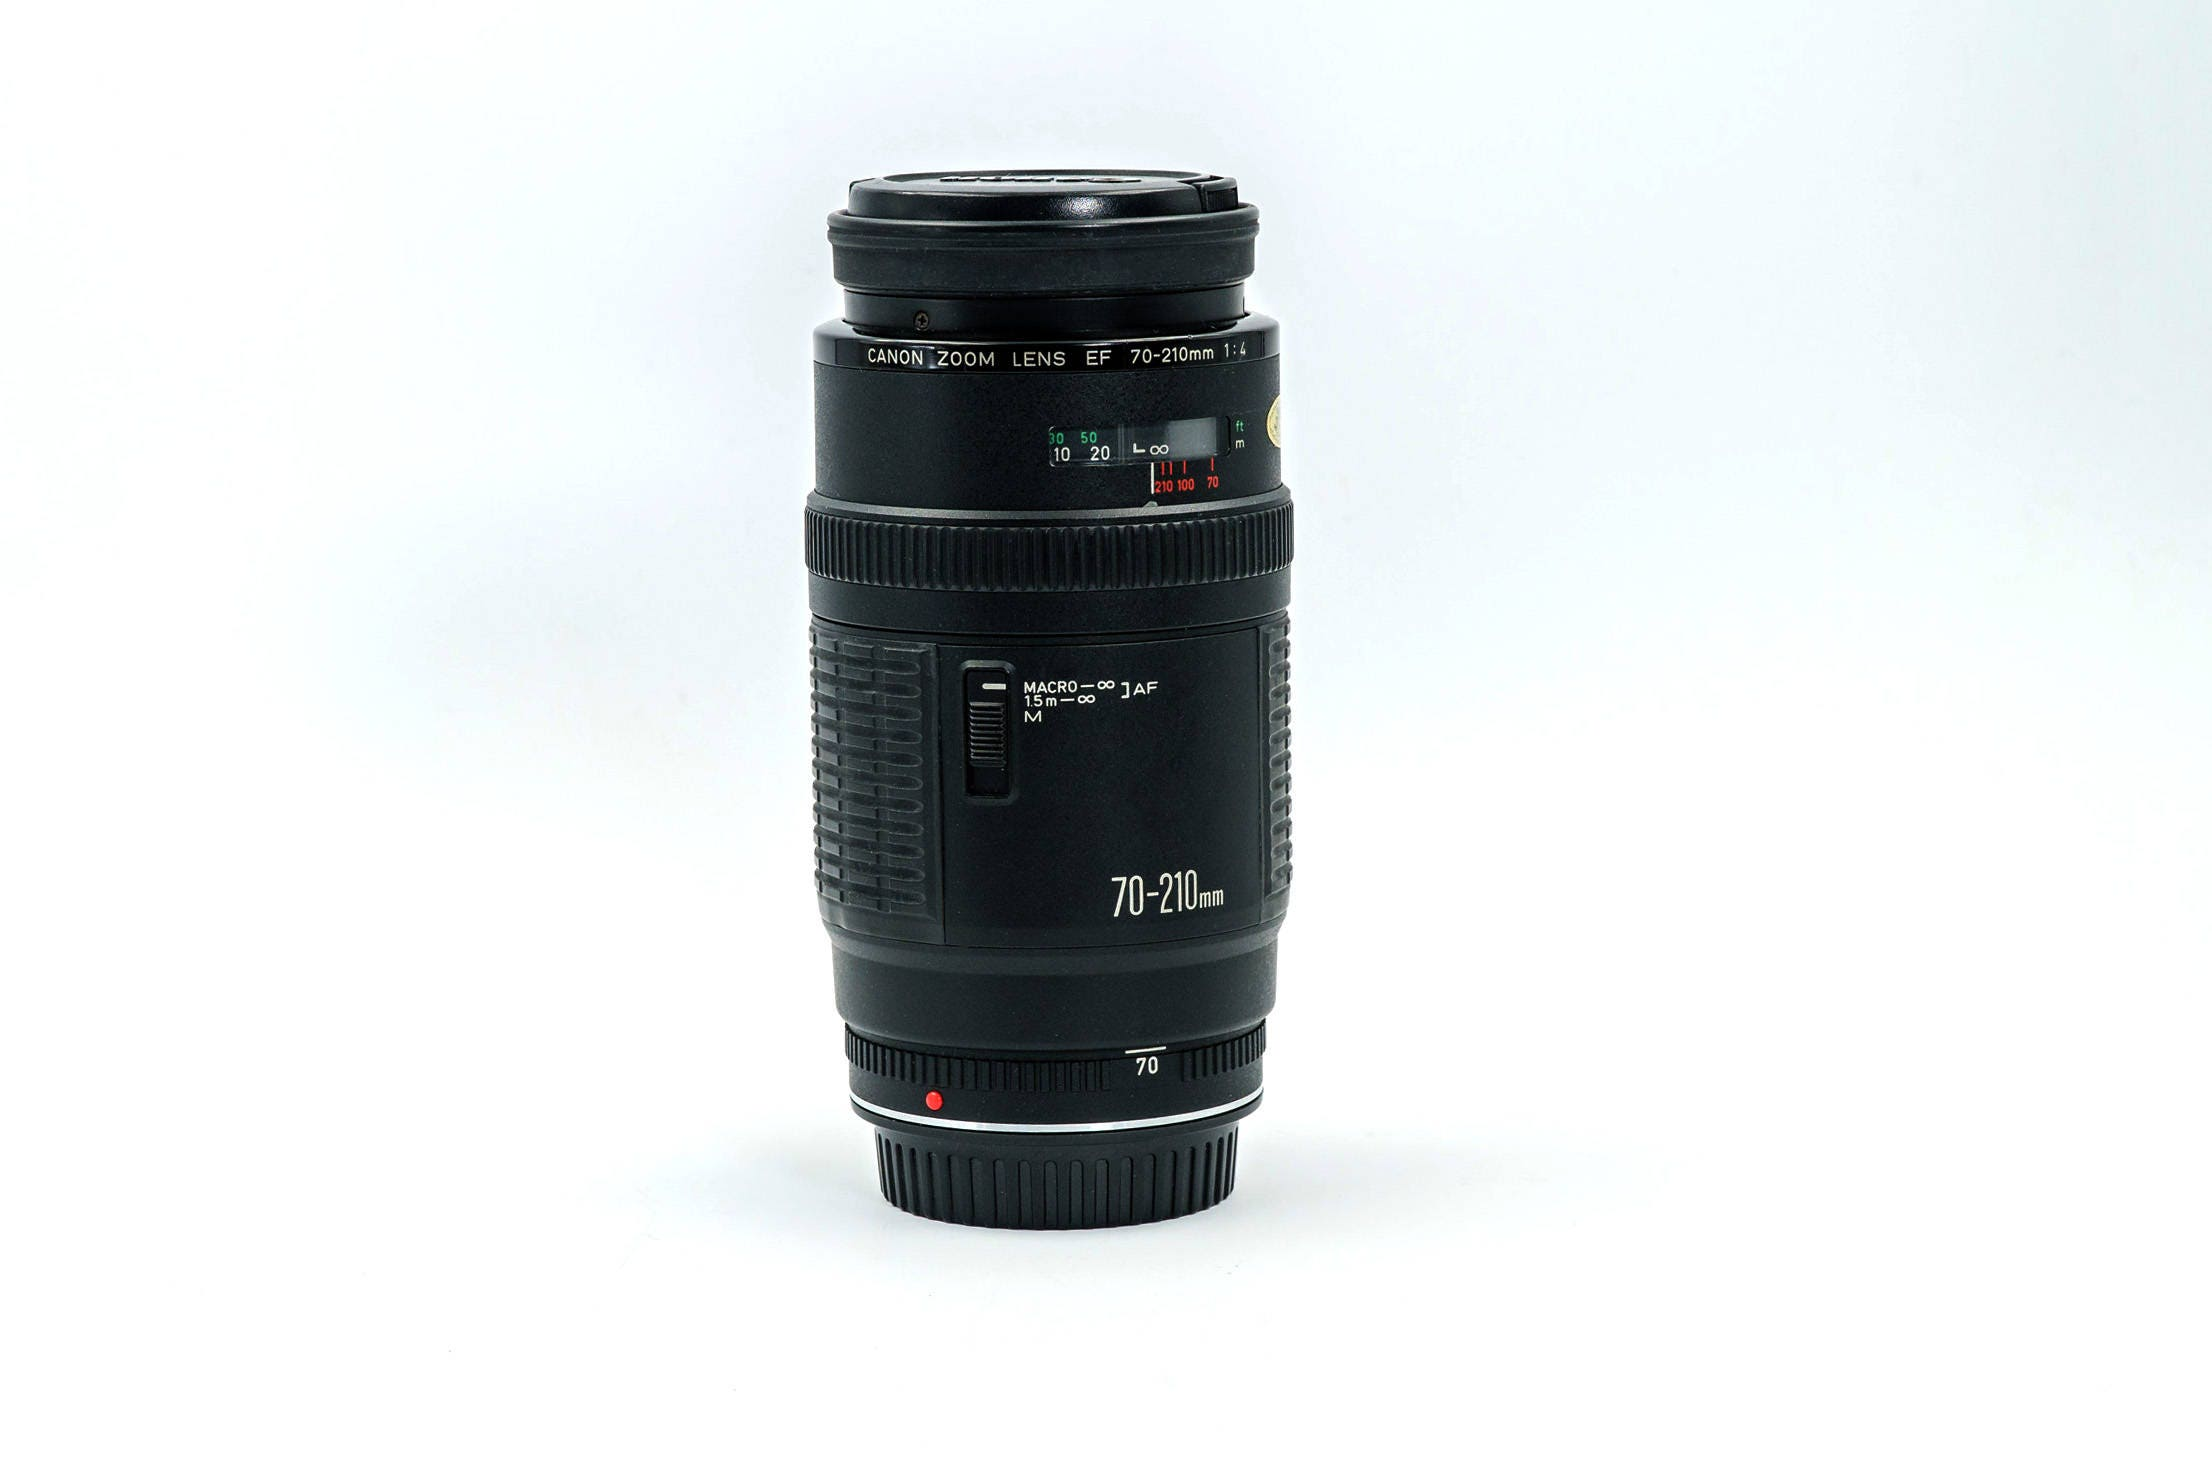 CANON EF 70-210mm MACRO Auto focus Full Frame Telephoto Lens with ...